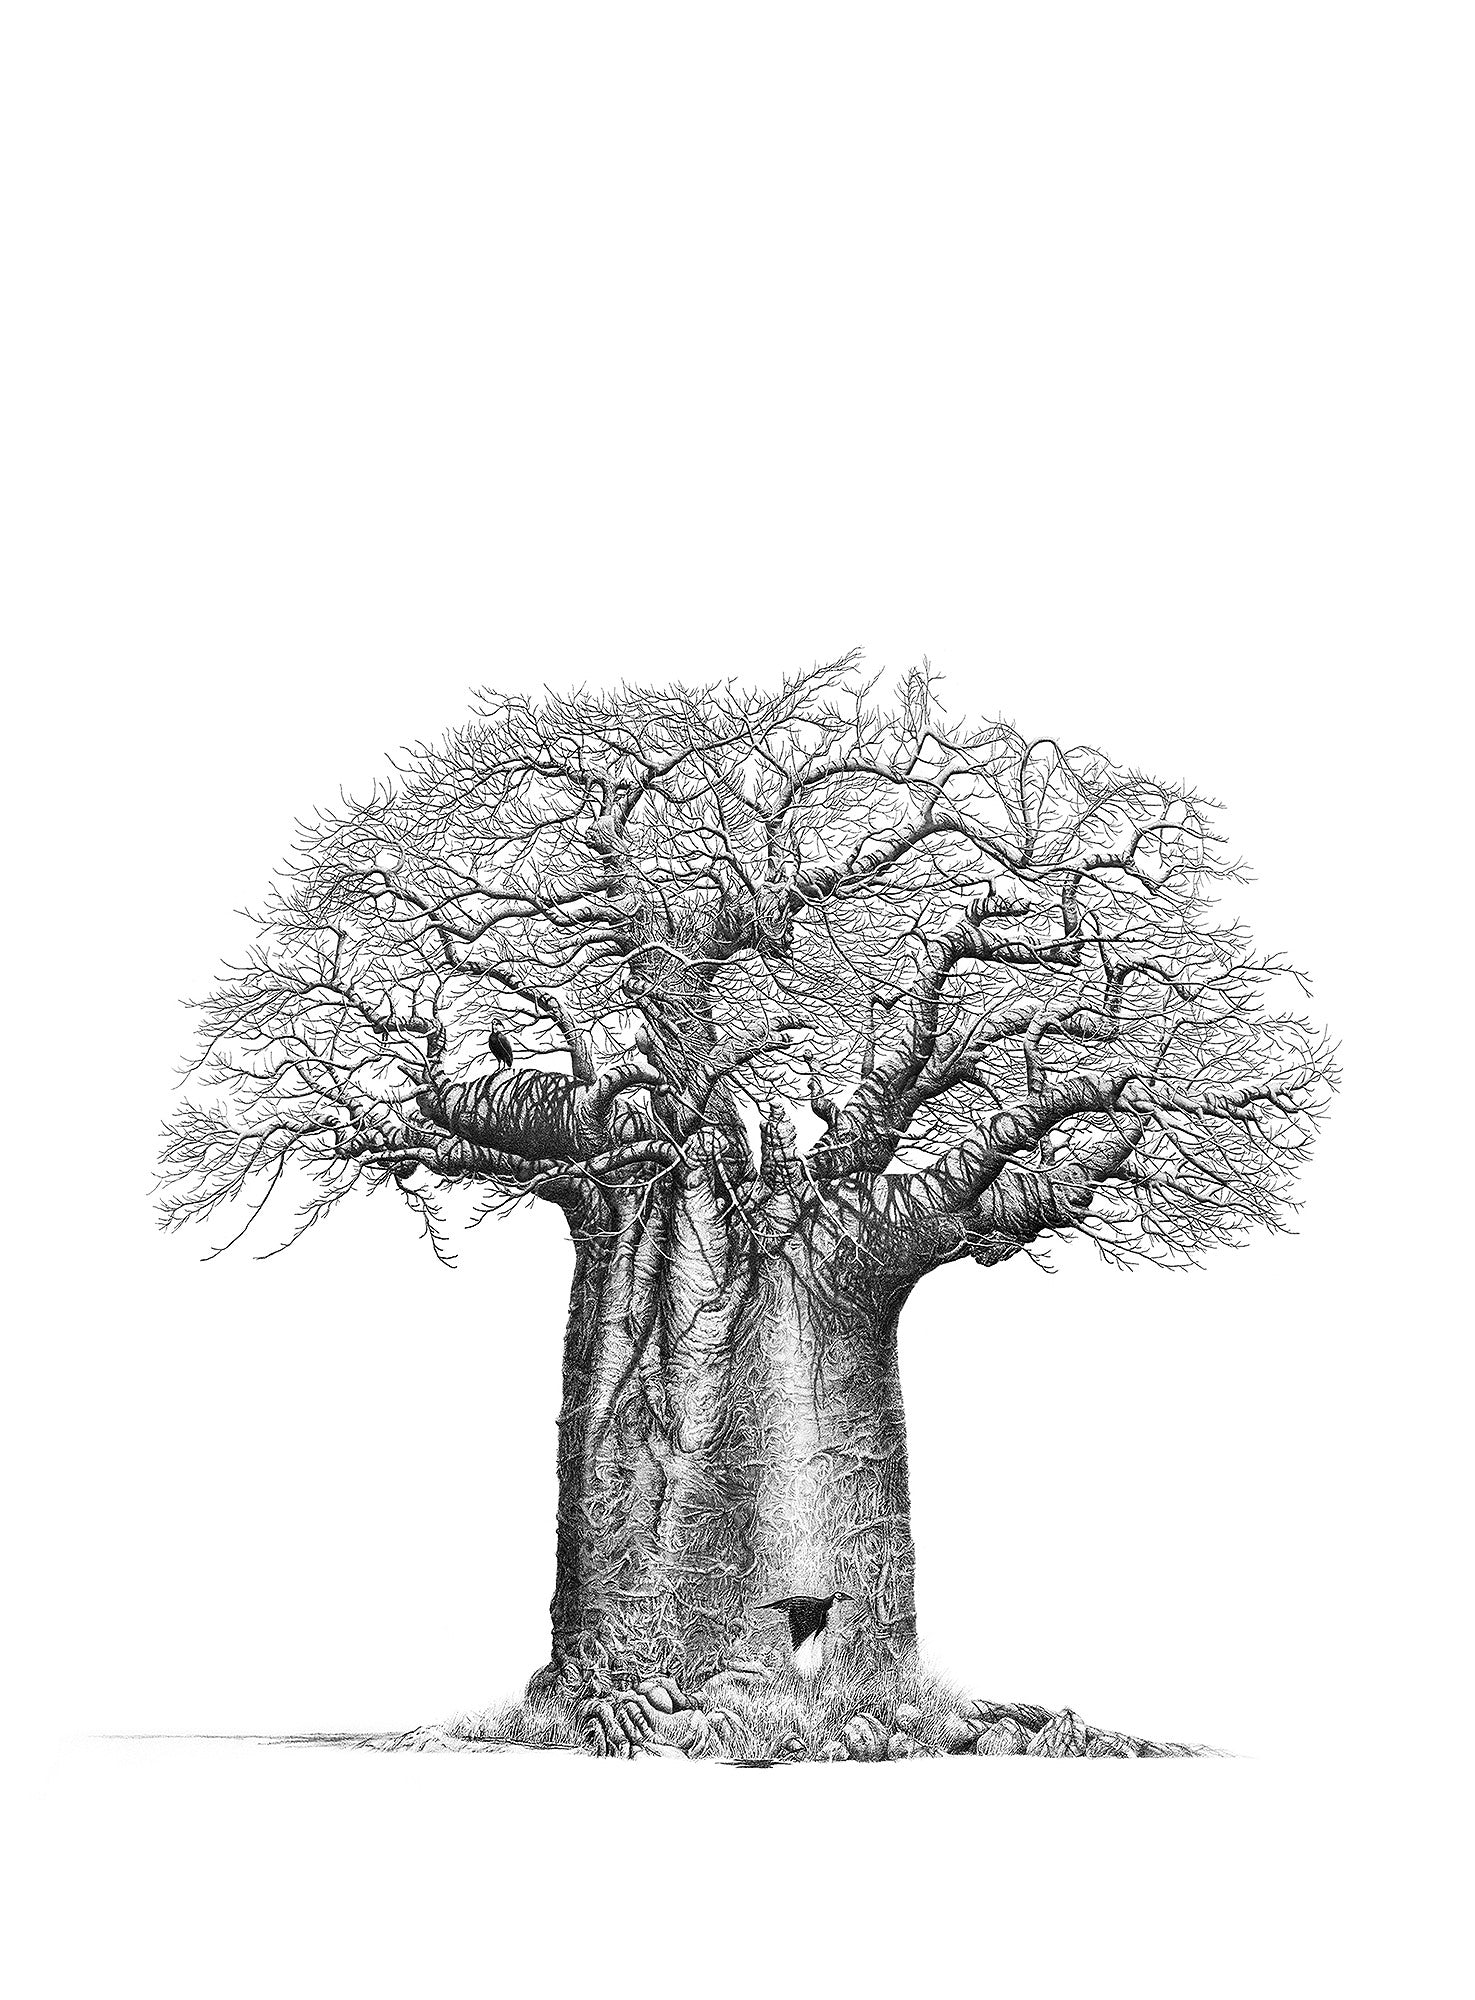 Baobab tree drawing by artist bowen boshier